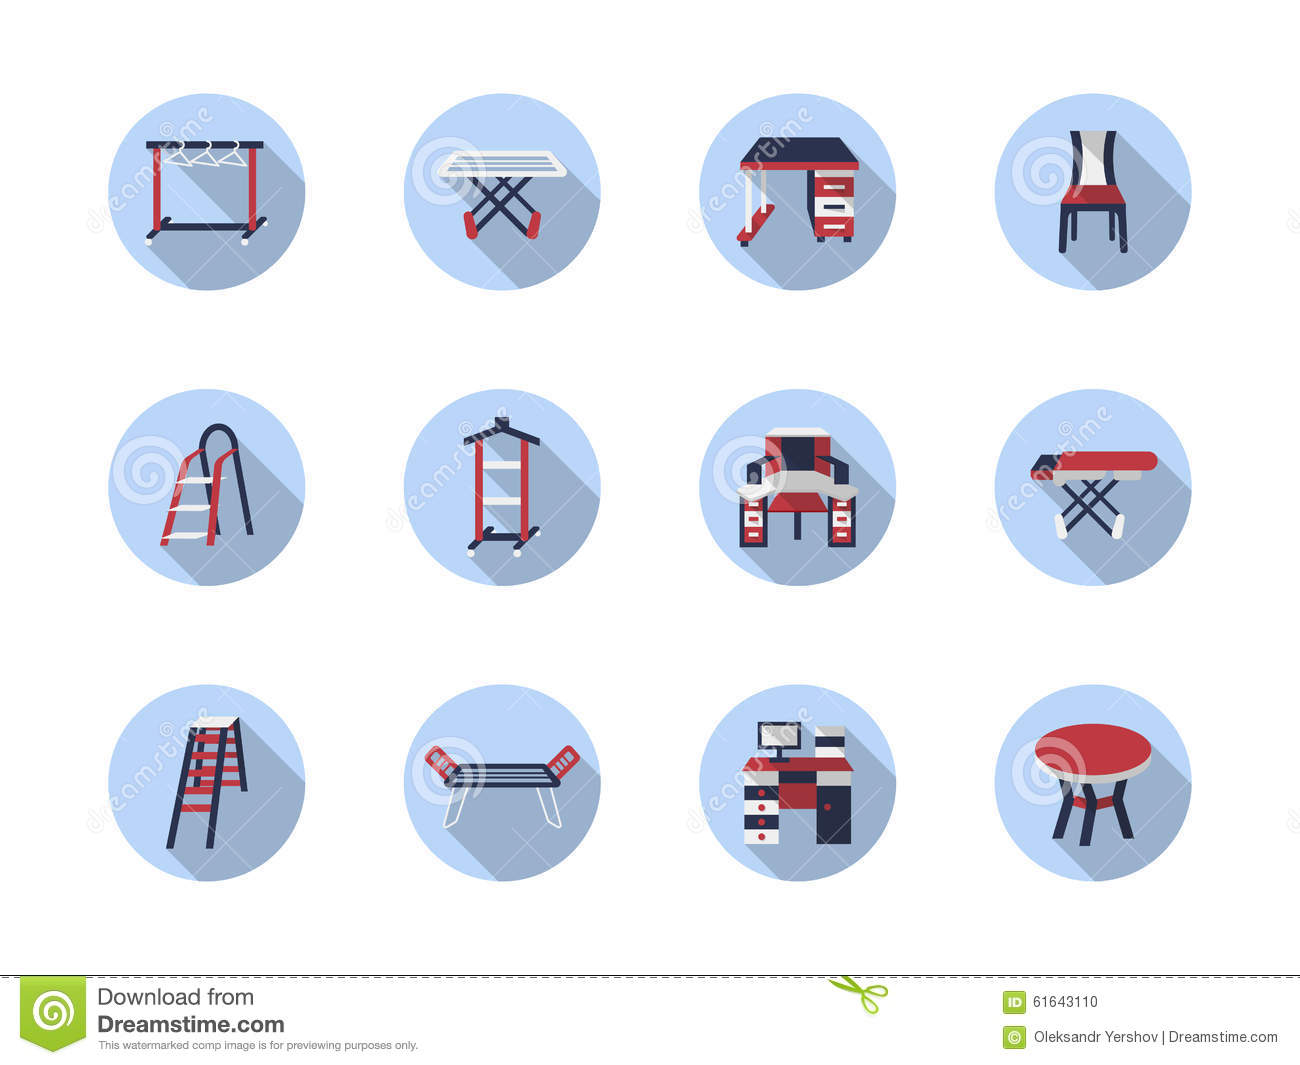 Home care flat round icons. Home Care Flat Round Icons Stock Illustration   Image  61643110